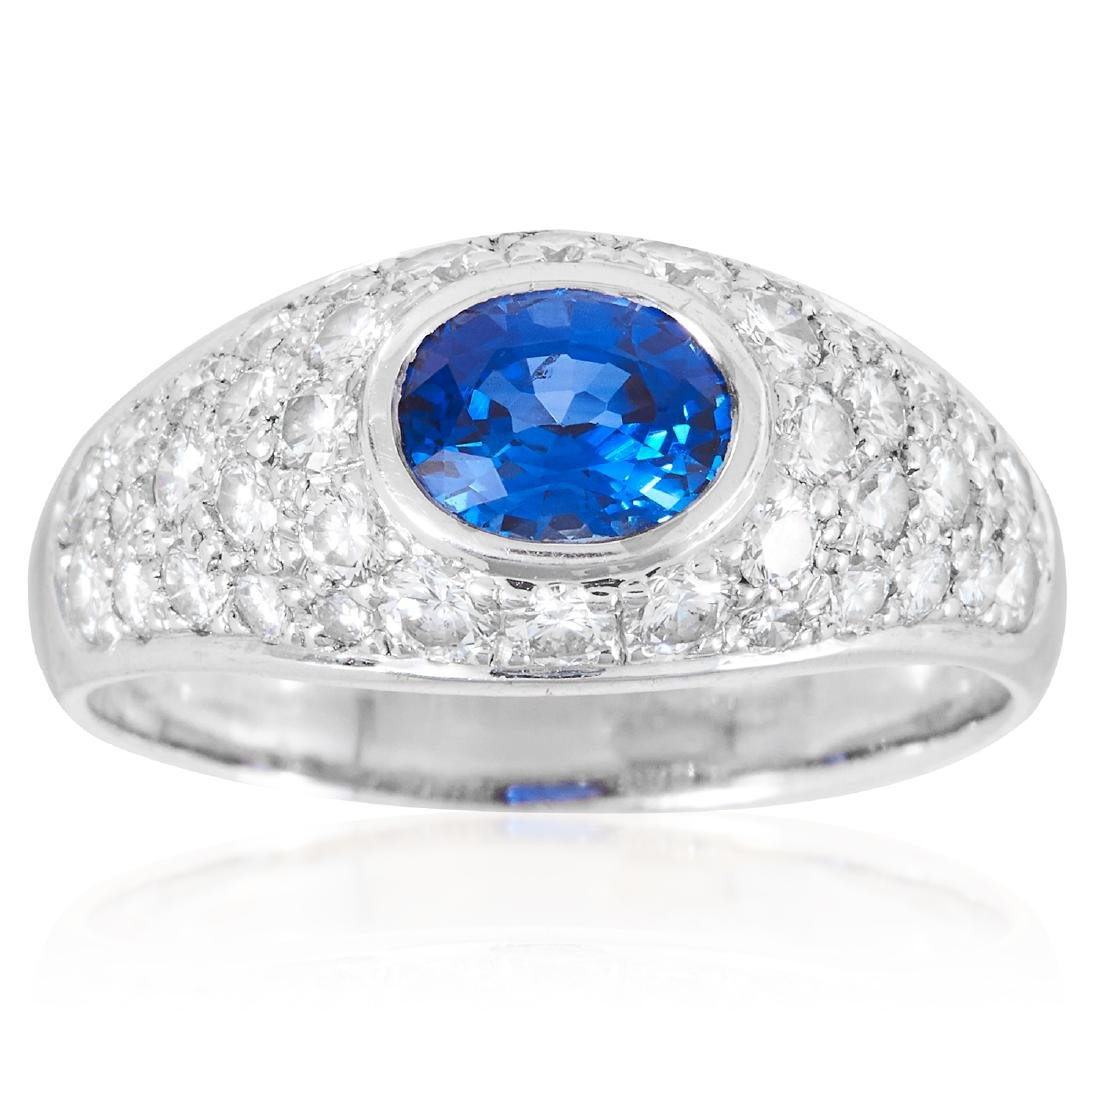 A CEYLON SAPPHIRE AND DIAMOND DRESS RING in 18ct white